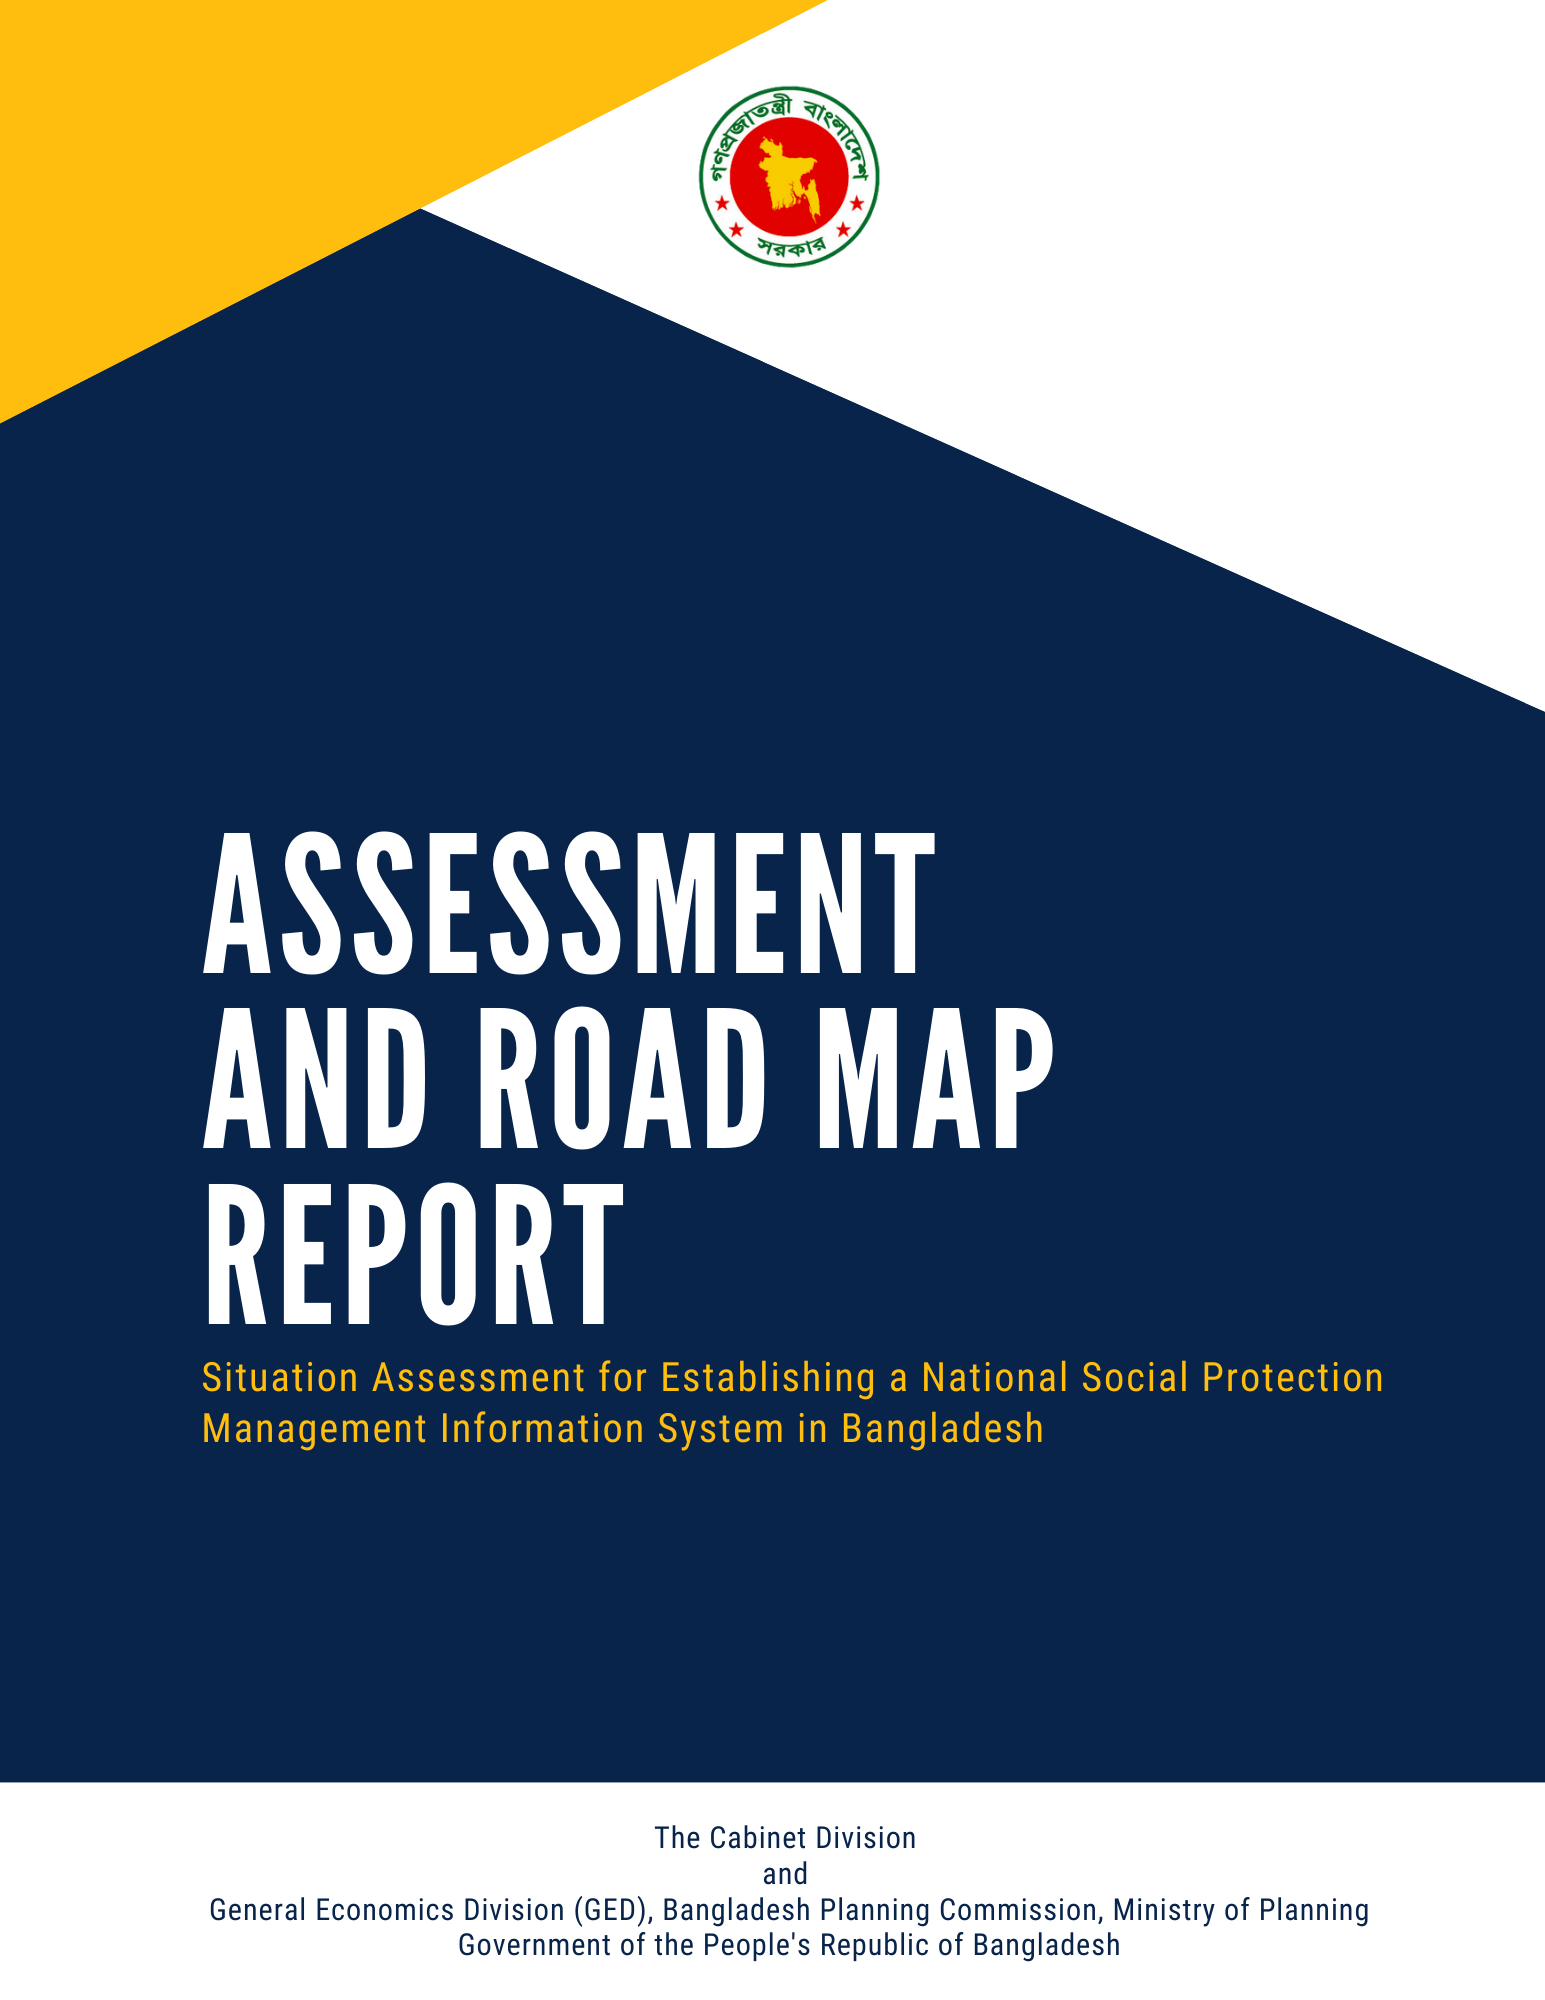 Assessment and Road Map Report Situation Assessment for Establishing a National Social Protection Management Information System in Bangladesh